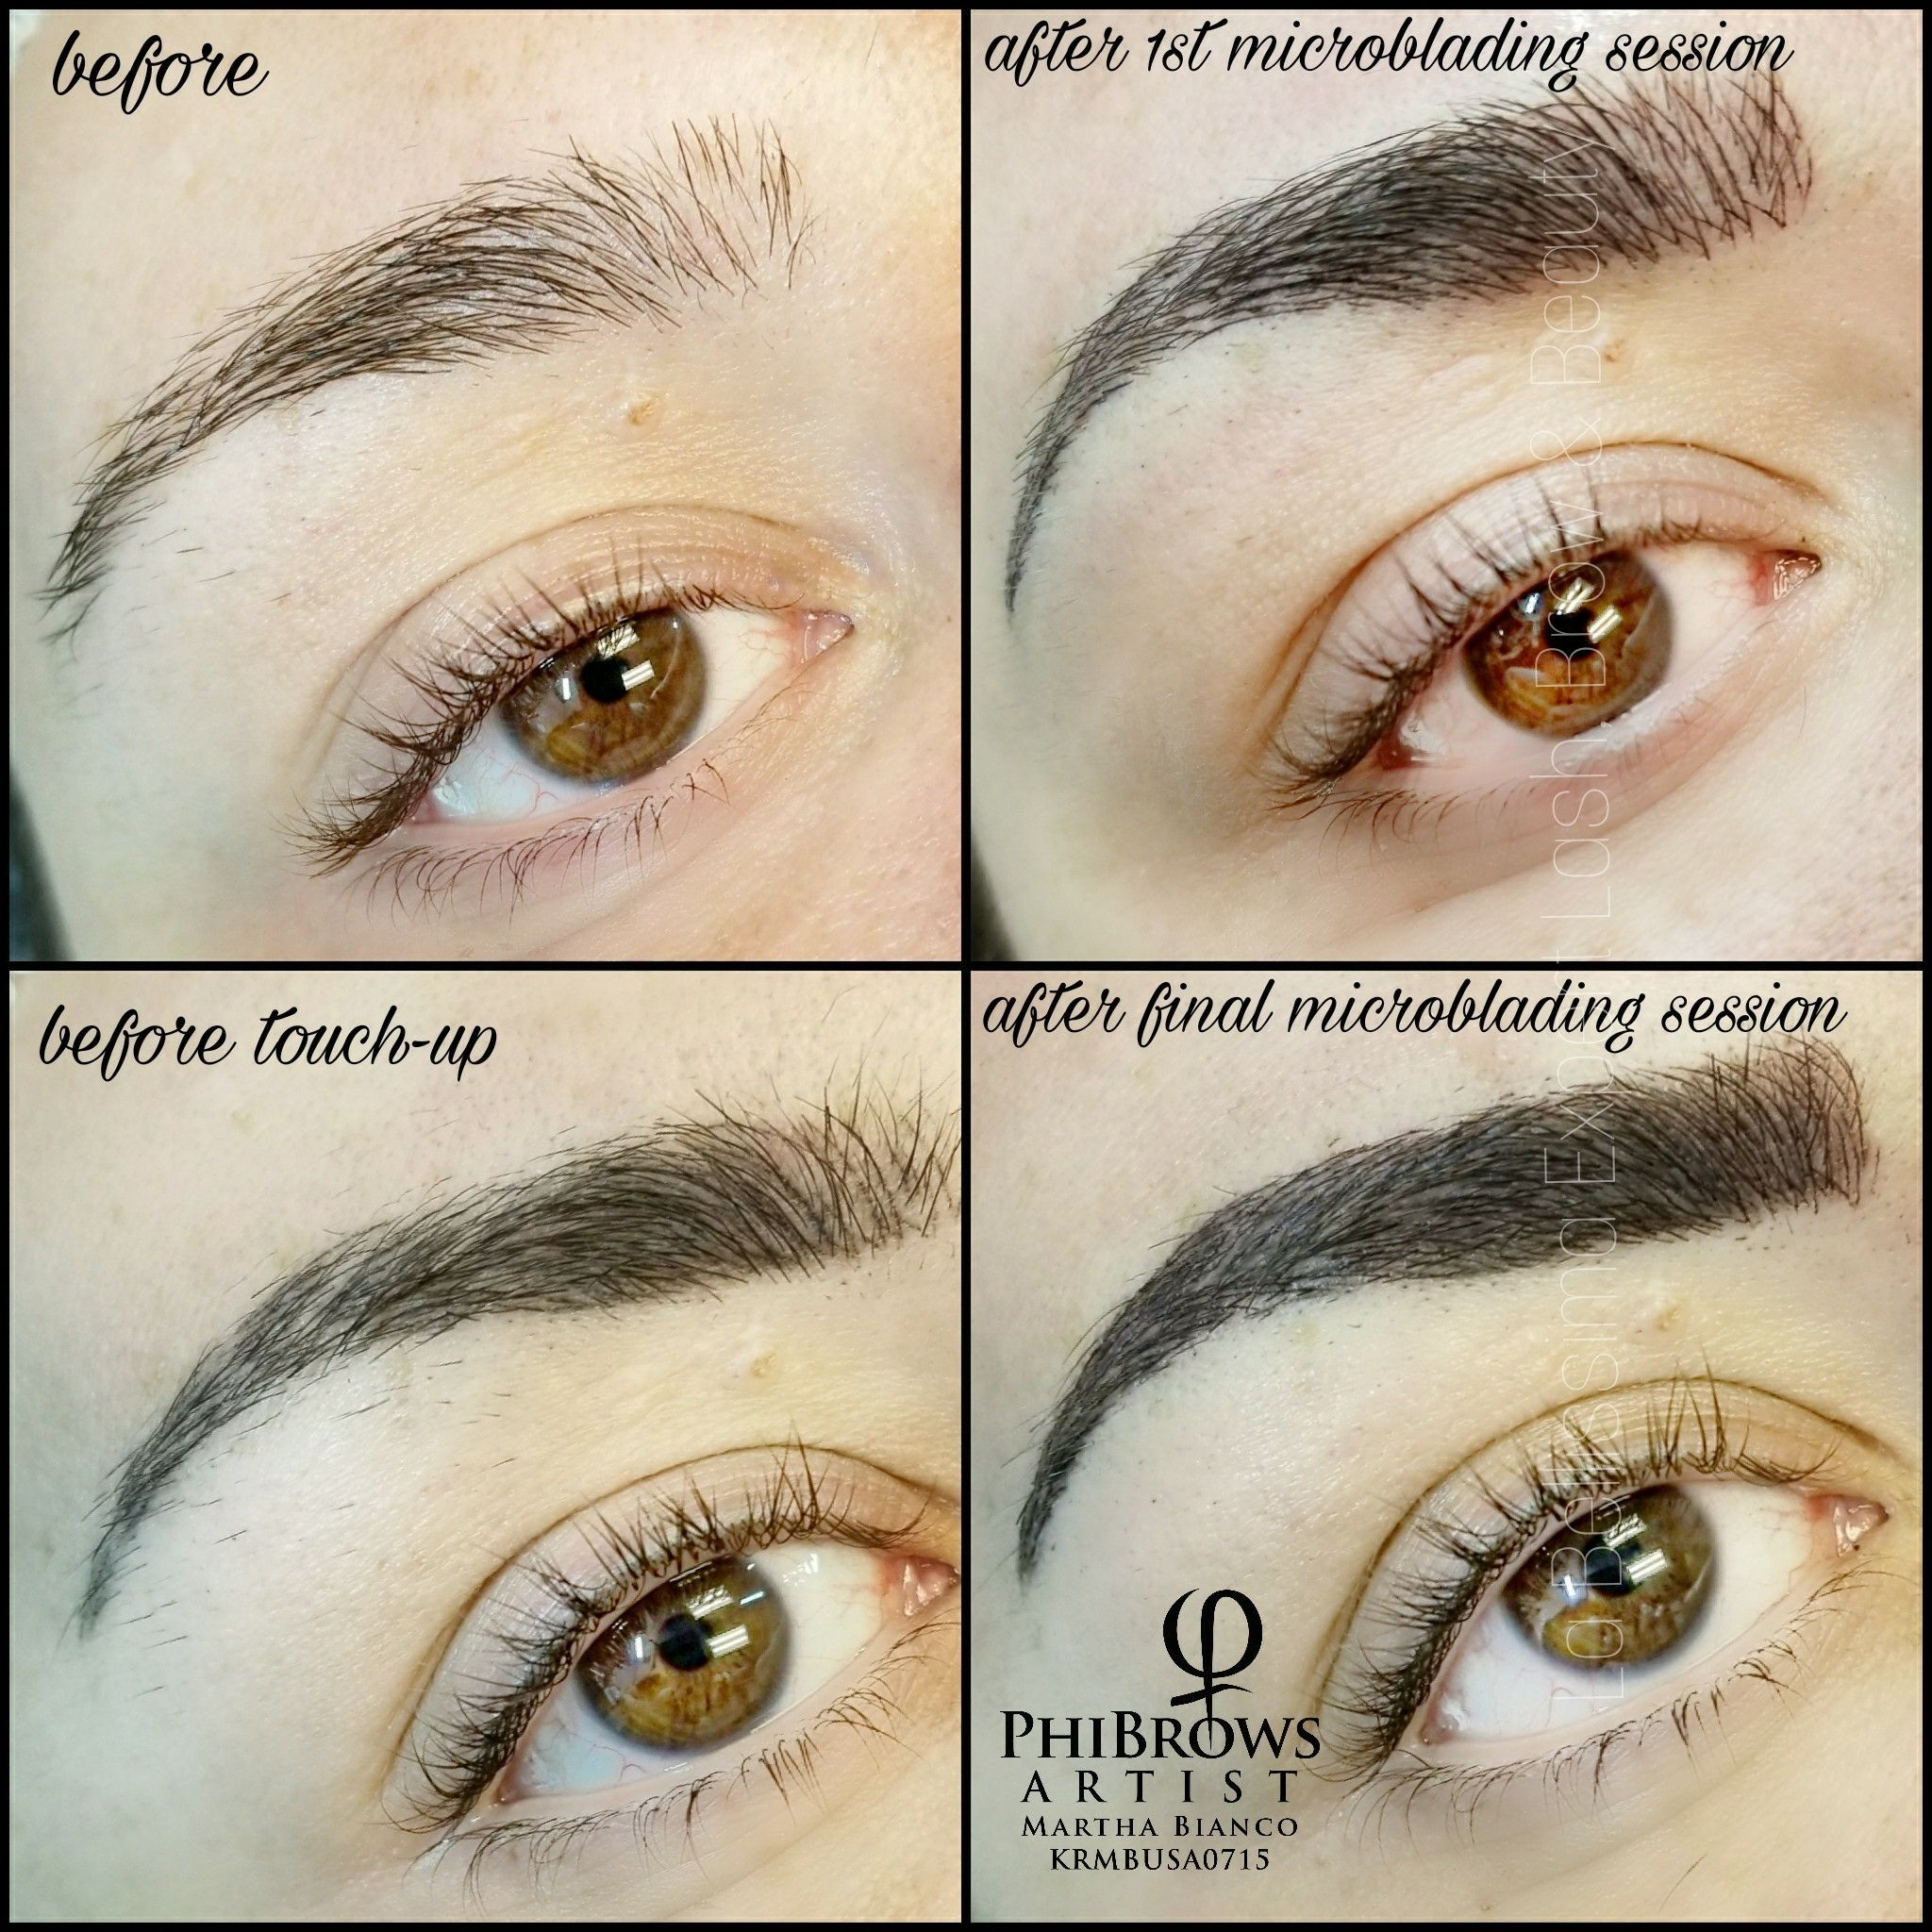 Before & After Final Microblading. Notice the 2Step